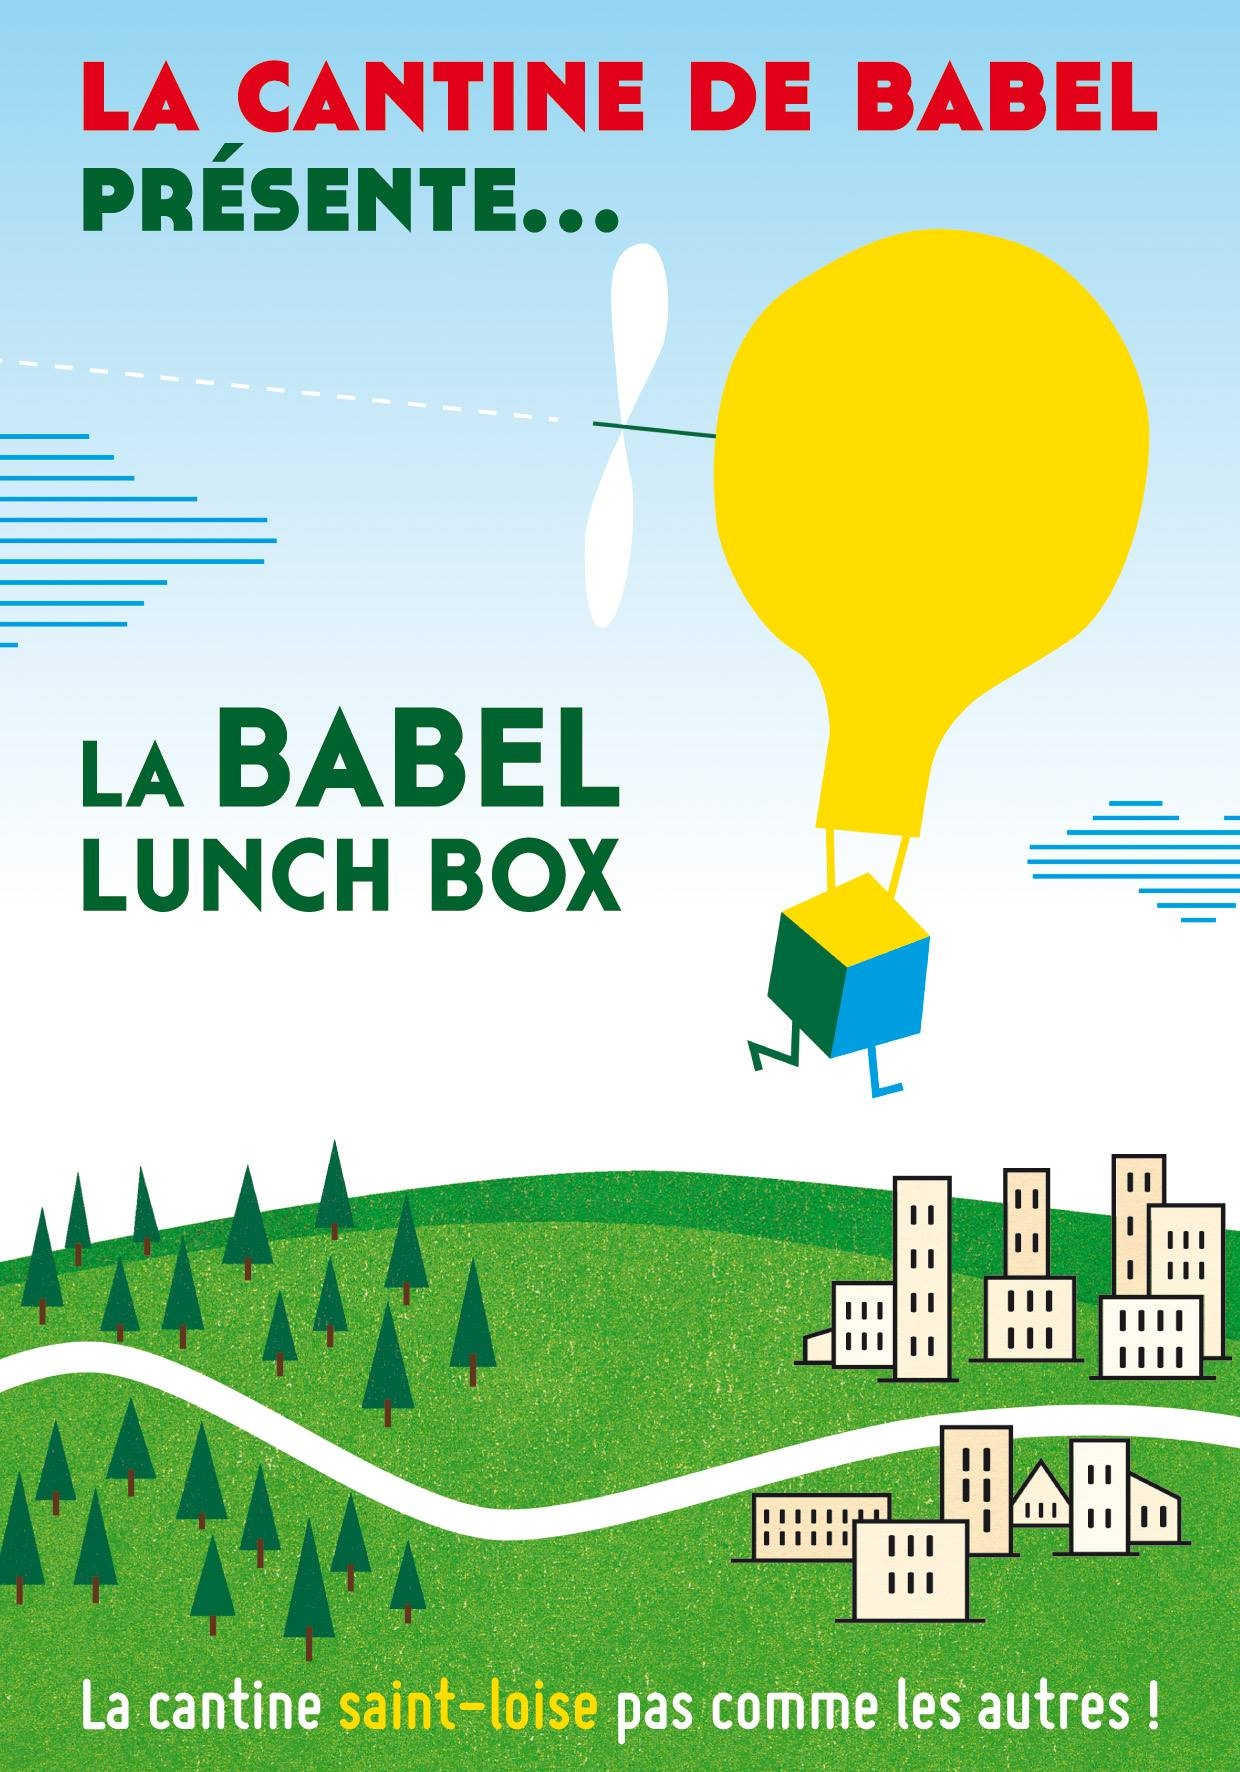 Babel lunch box débarque